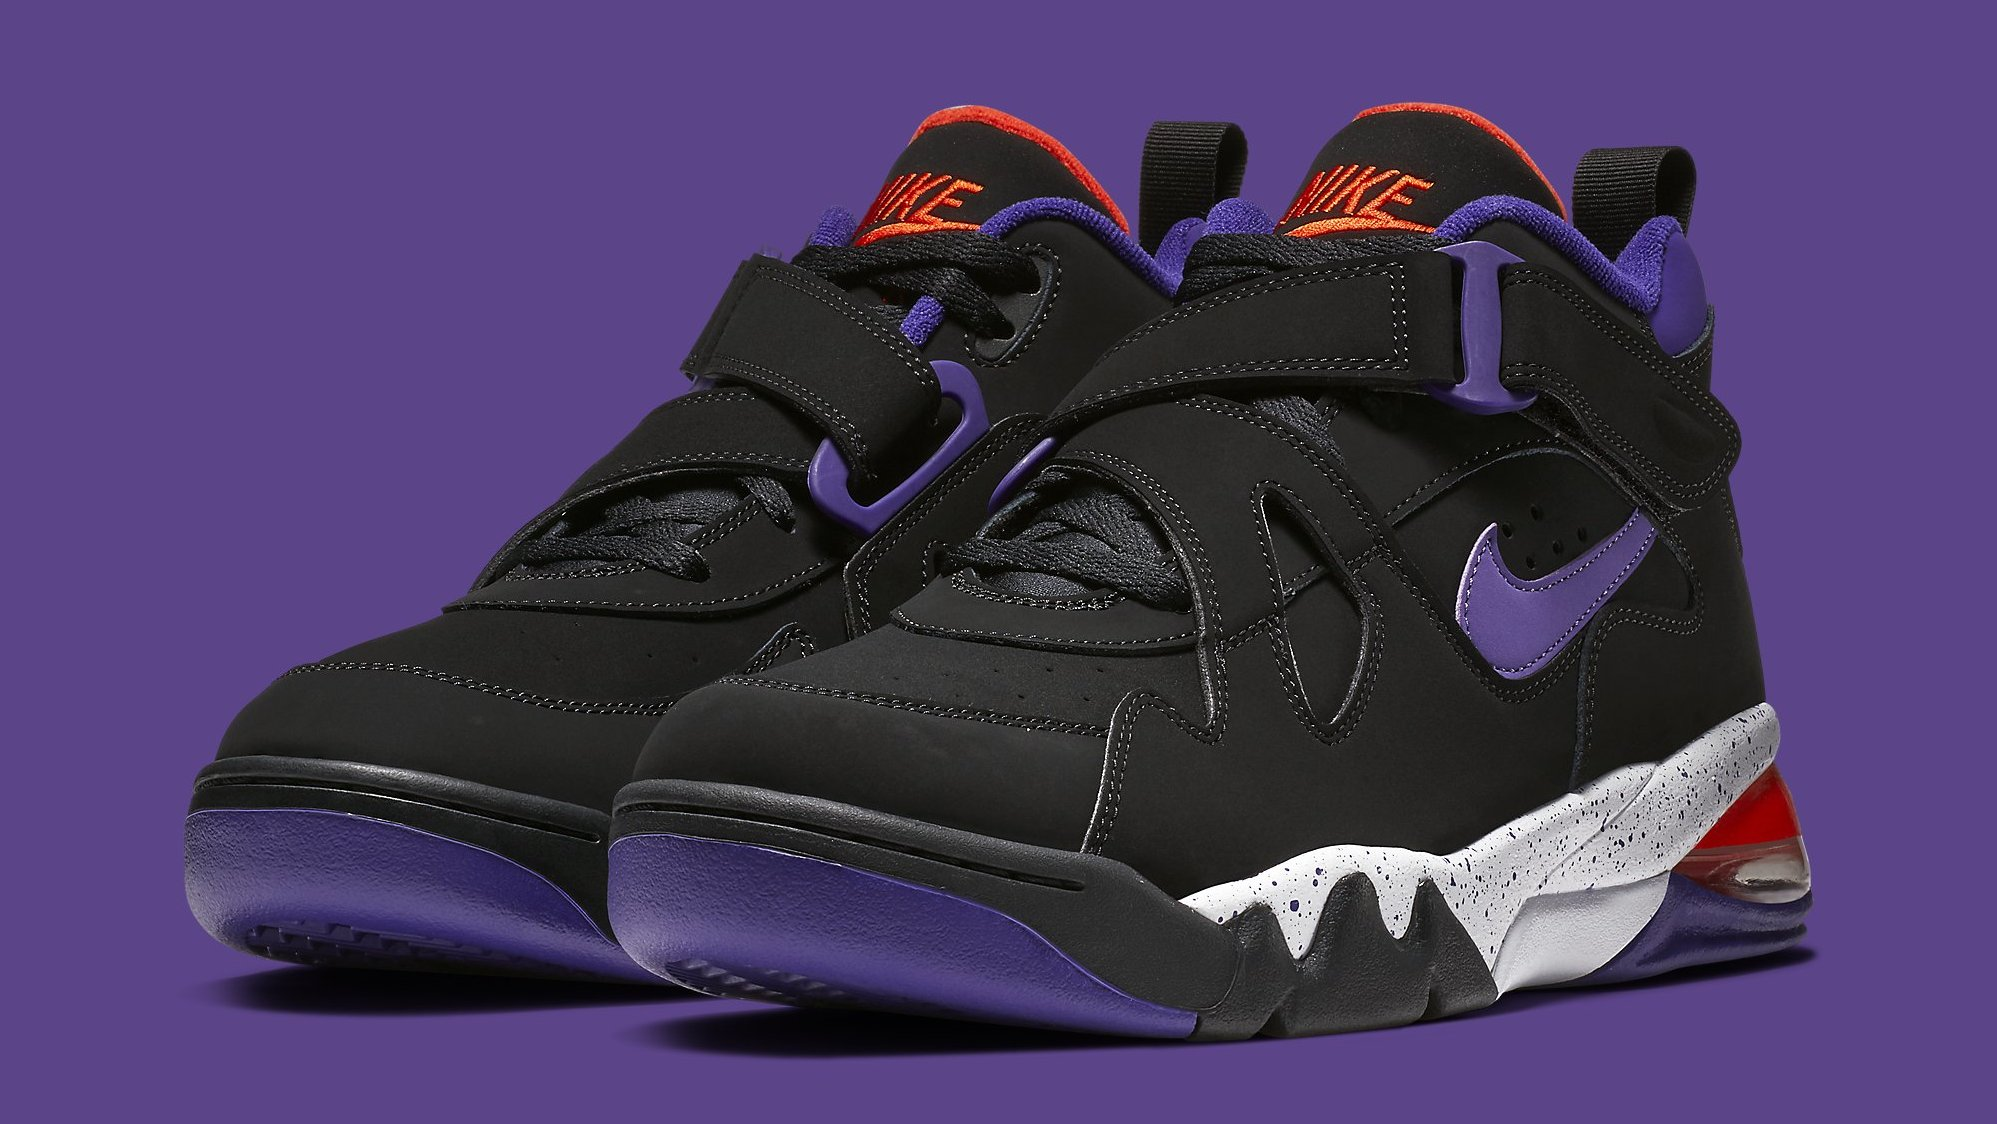 02f3a3115a Nike Air Force Max CB 'Suns' Release Date 10/12/2018 AJ7922-002 | Sole  Collector